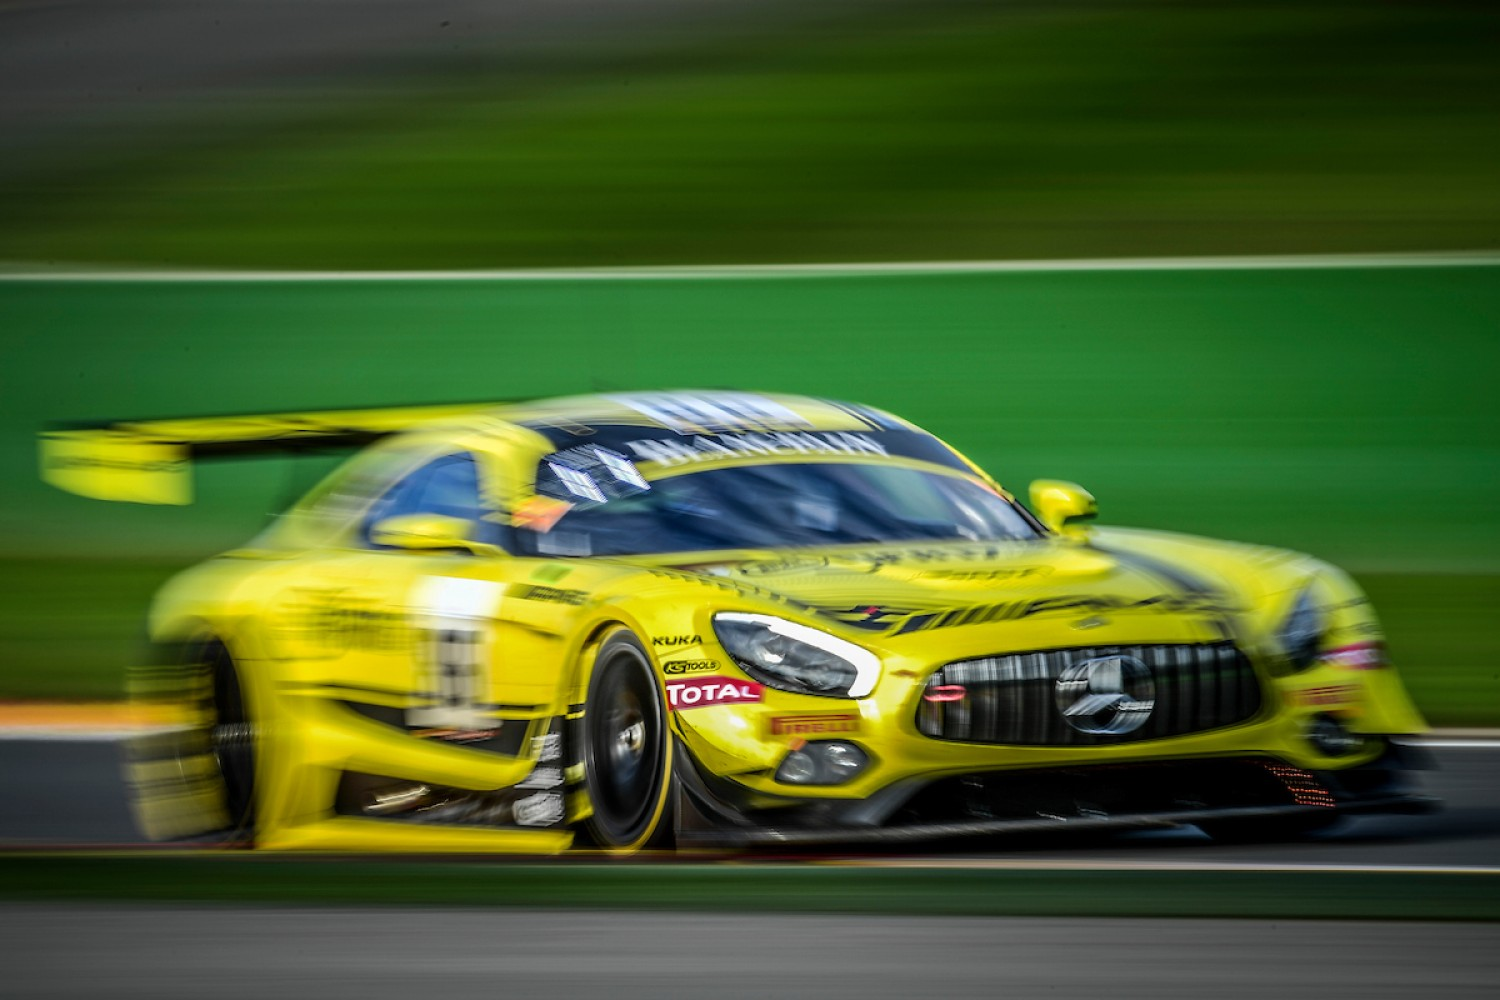 Maxi Götz fastest in first qualifying session